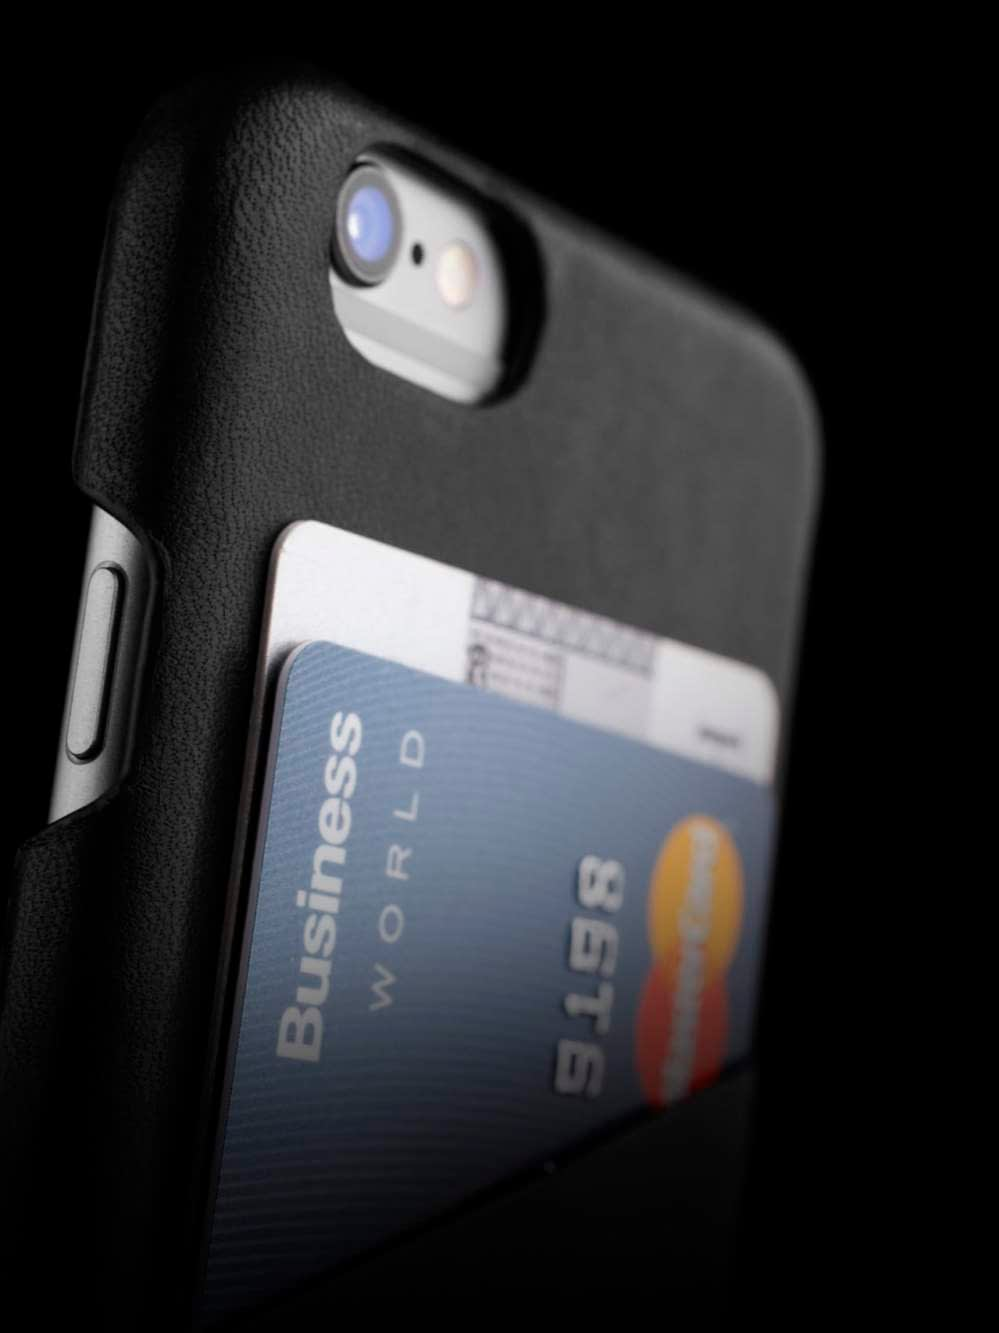 Leather Wallet Case for iPhone 6 Black Lifestyle 004